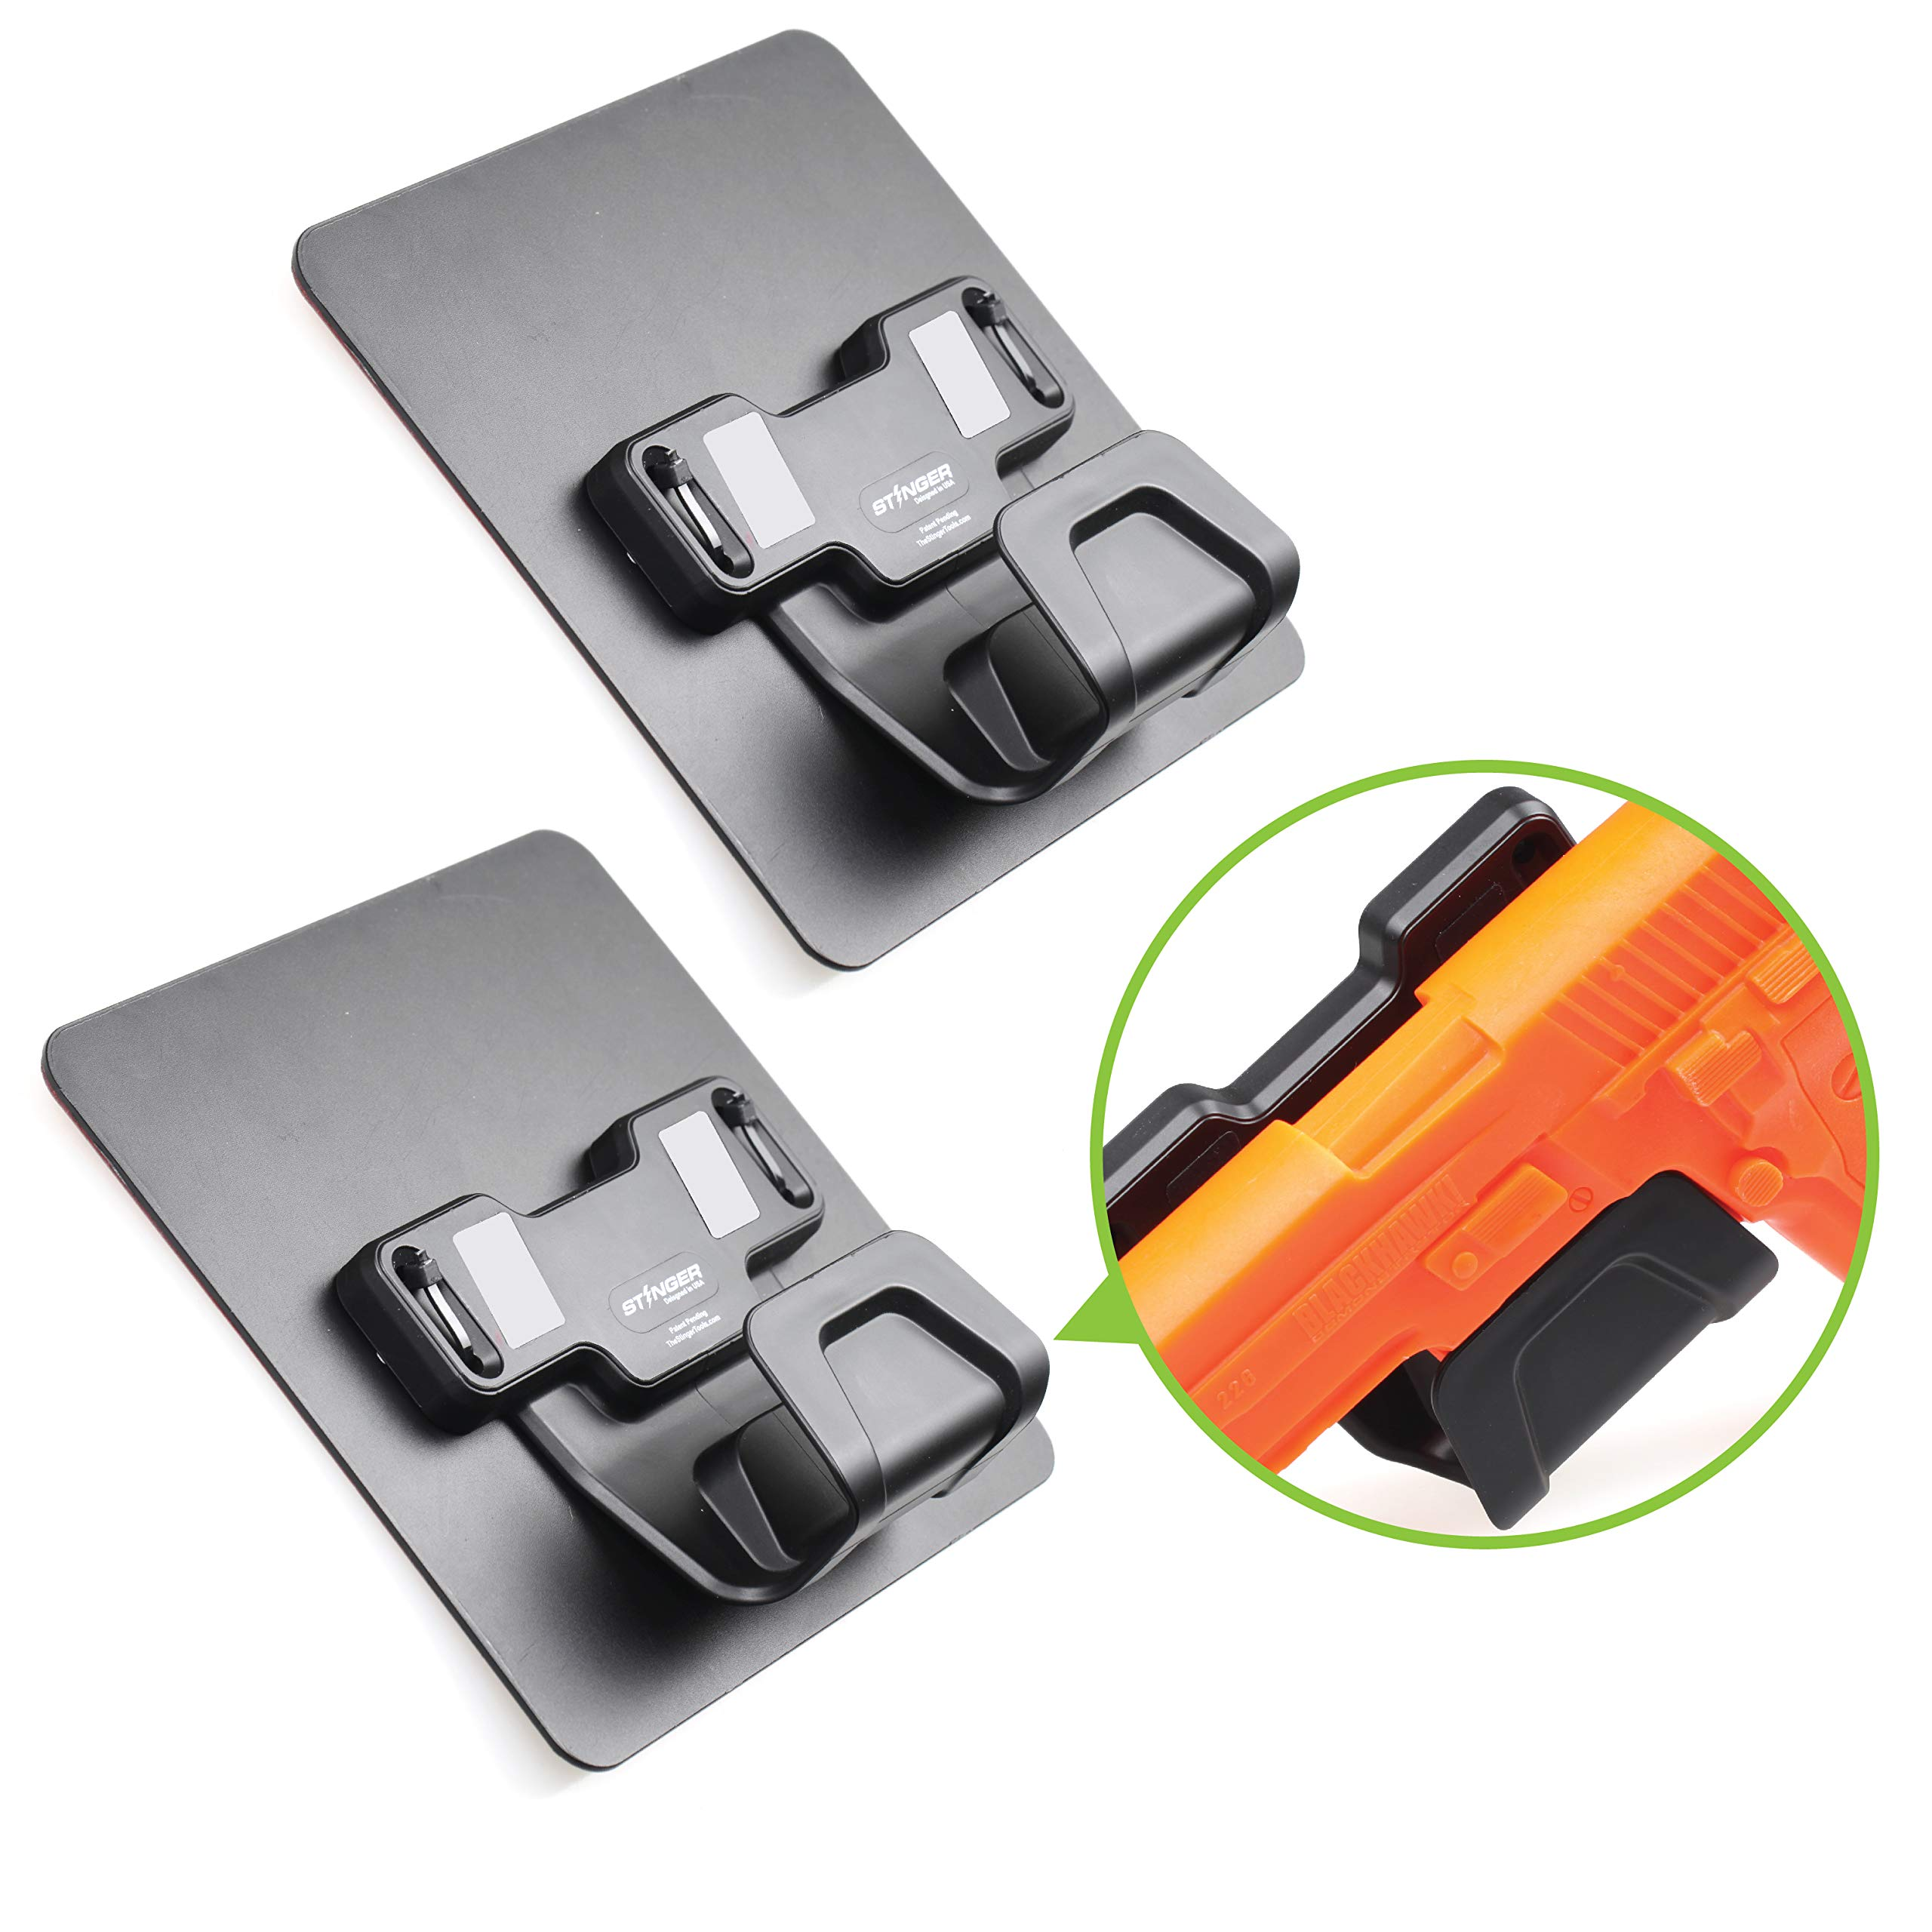 Stinger Magnetic Gun Holder w/Safety Trigger Guard Protection, w/Heavy Duty Adhesive Plate Non-Drill Solution, Wall Mount Gun Rack Holster Handgun Shotgun Firearm Conceal (Grey 2pcs Combo) by Stinger